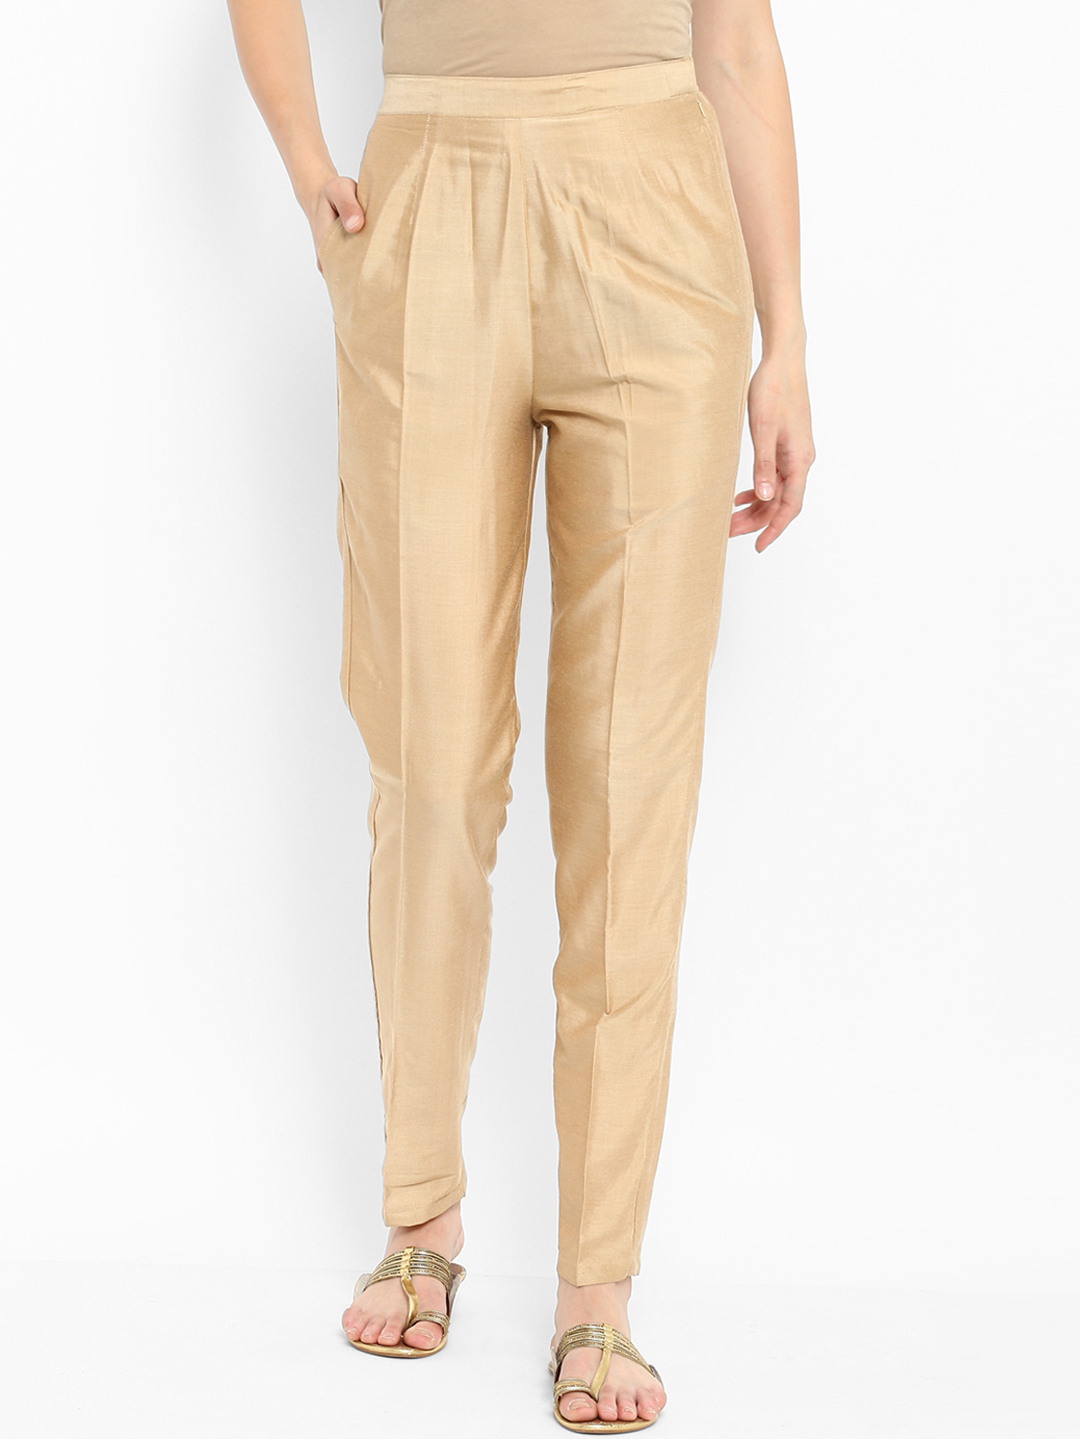 Buy Cream Ankle Pant Cotton Silk for Best Price, Reviews, Free Shipping